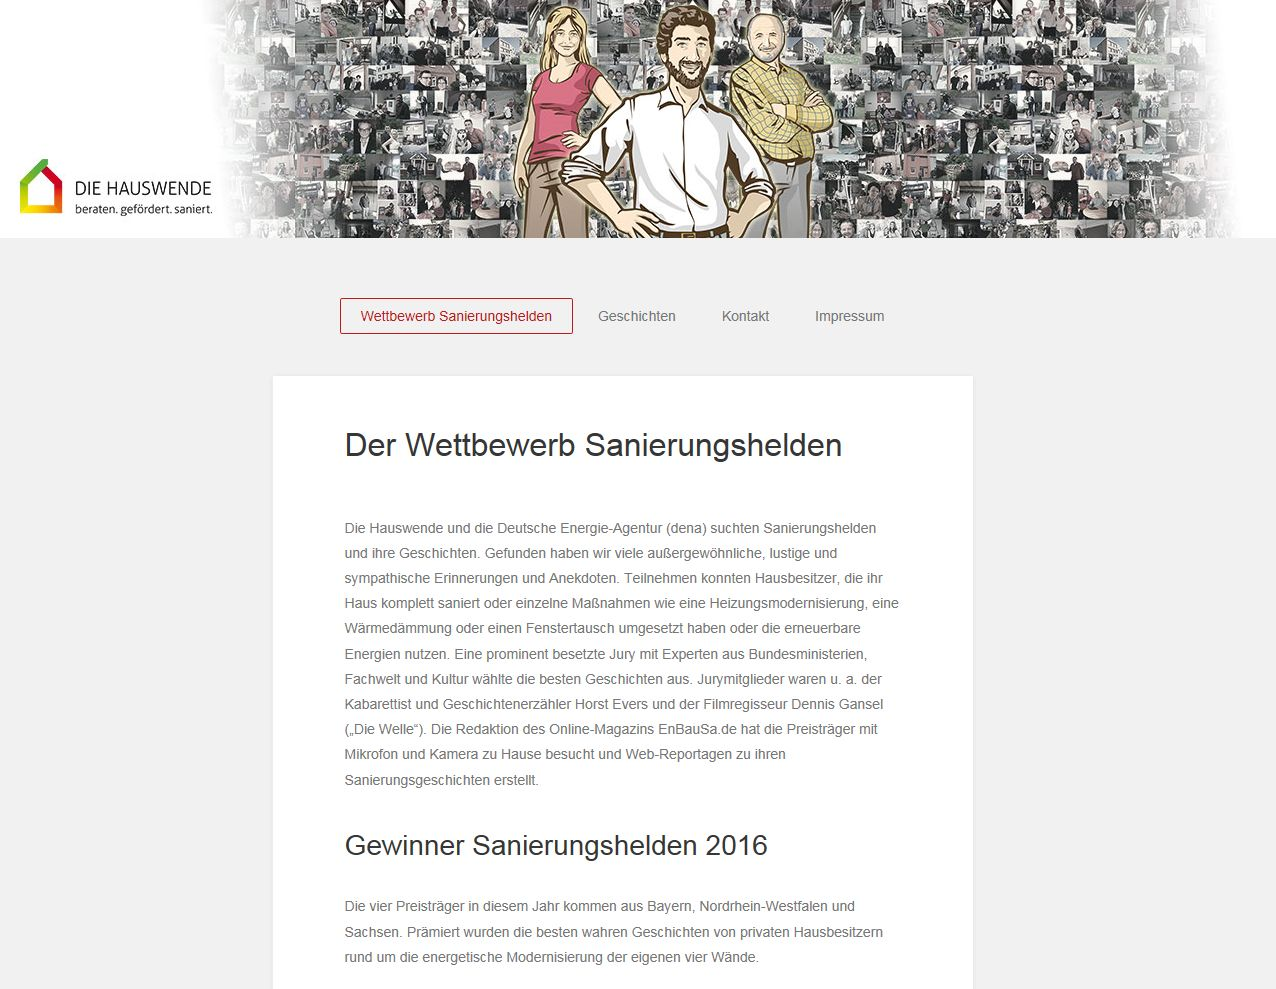 http://go.blogfoster.com?cmp=201611denaFl2&web=amberlight-label.blogspot.de#http://www.sanierungshelden.de?utm_source=blog&utm_medium=blogfoster&utm_campaign=Flight_November_2016